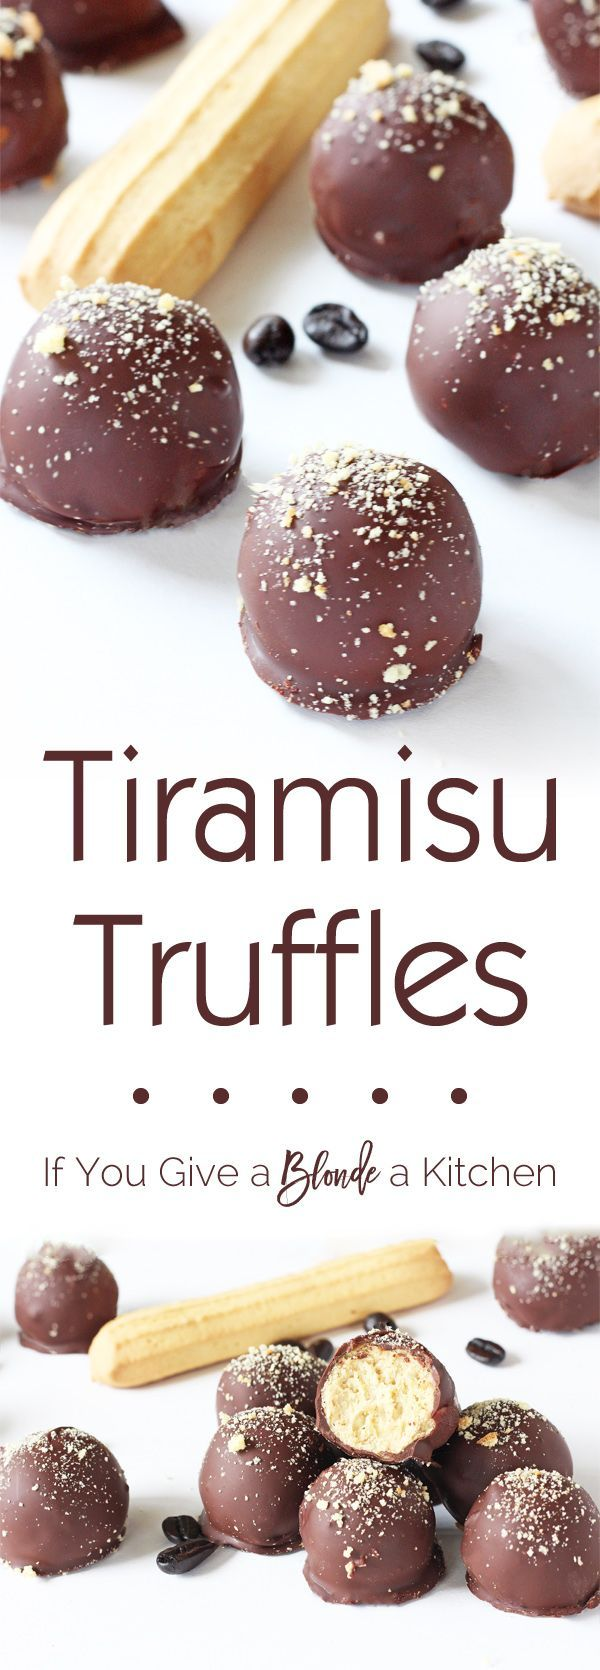 Tiramisu truffles are a wonderful blend of tiramisu flavors (think Italian biscuits, espresso and chocolate) in a delicious bite. The no bake recipe only uses six ingredients! | /haleydwilliams/